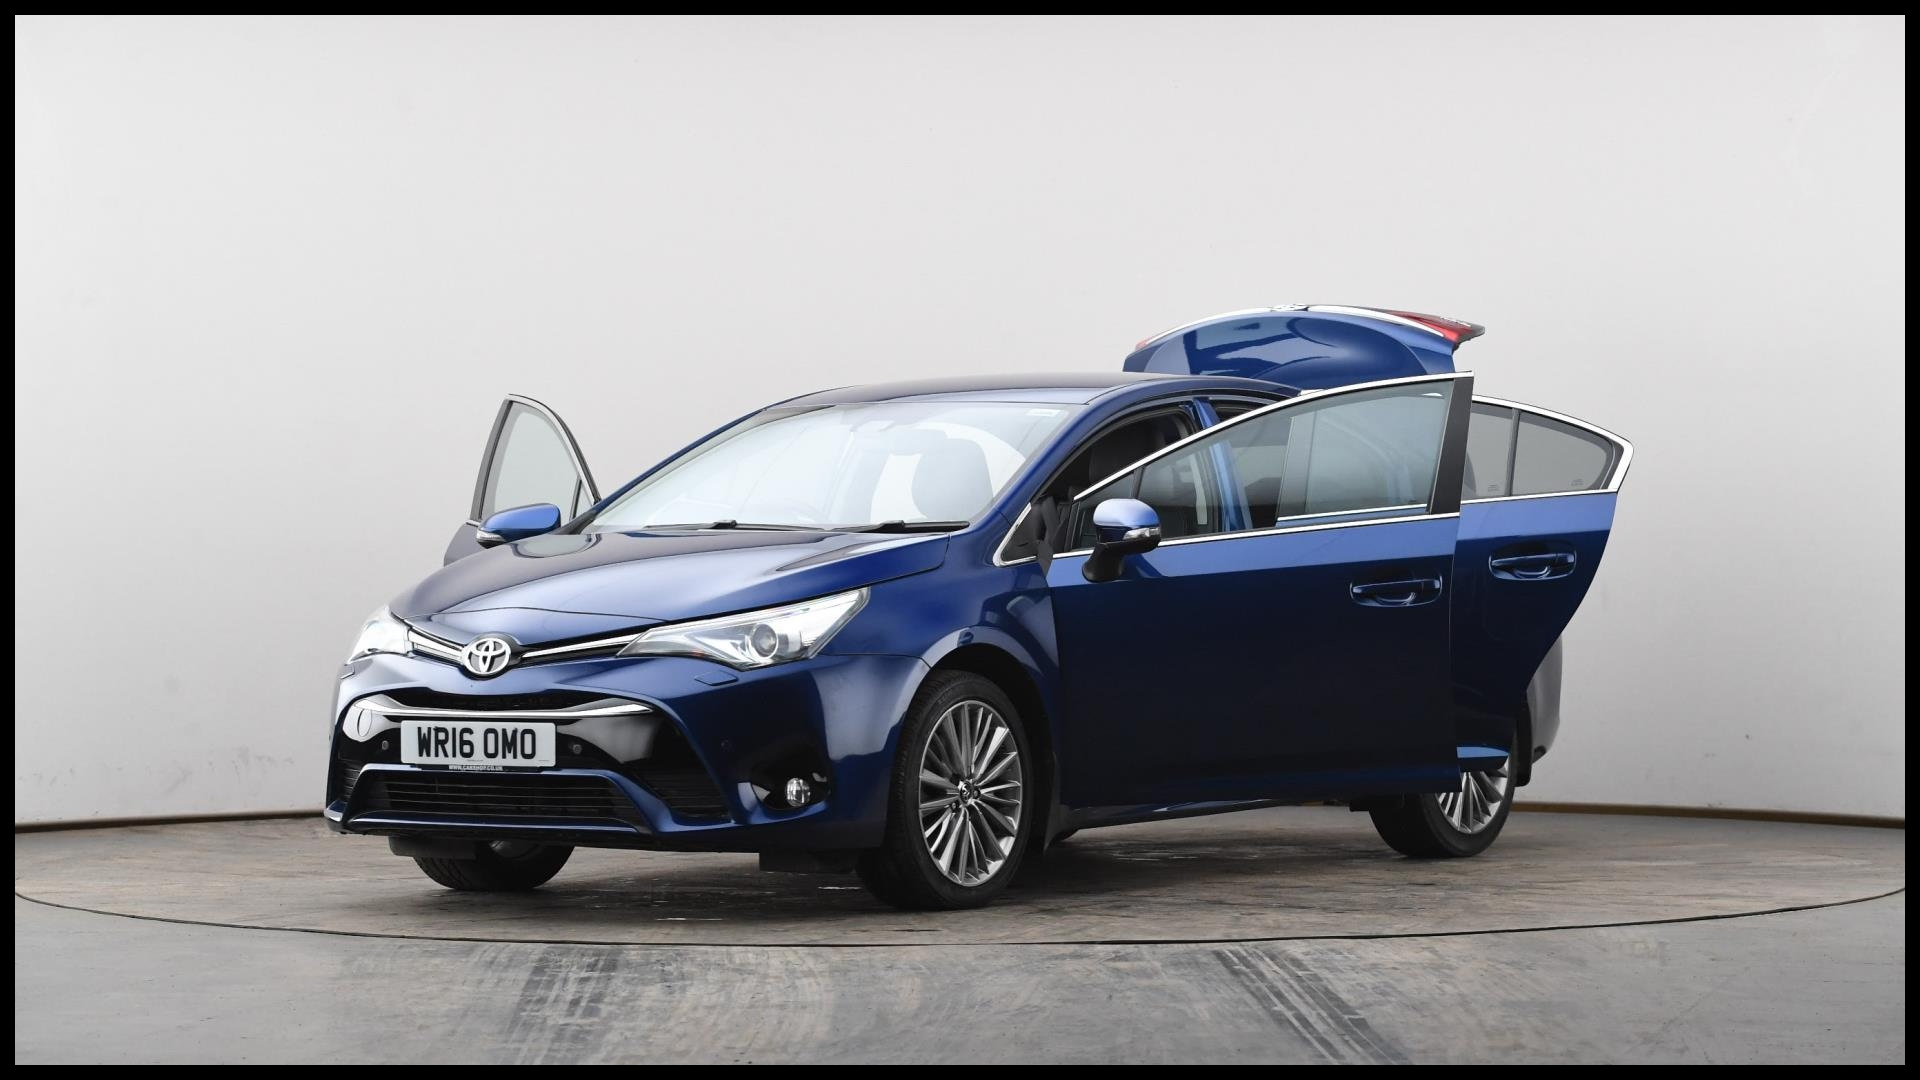 New Used toyota Avensis 2 0d Excel 4dr Blue Wr16omo Price and Release Date